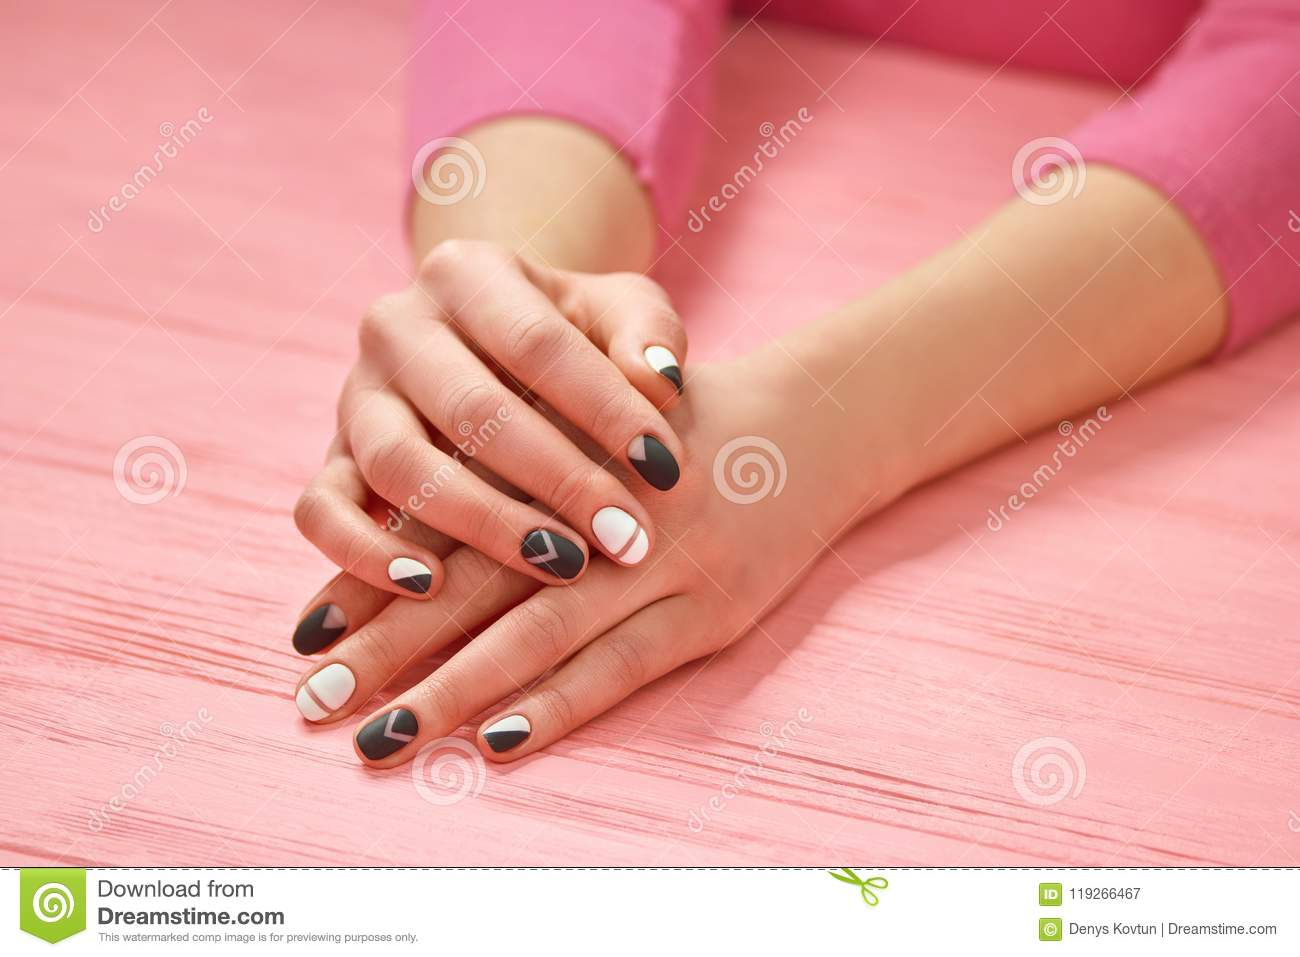 Girls Hands With Creative Nails Design Stock Image Image Of